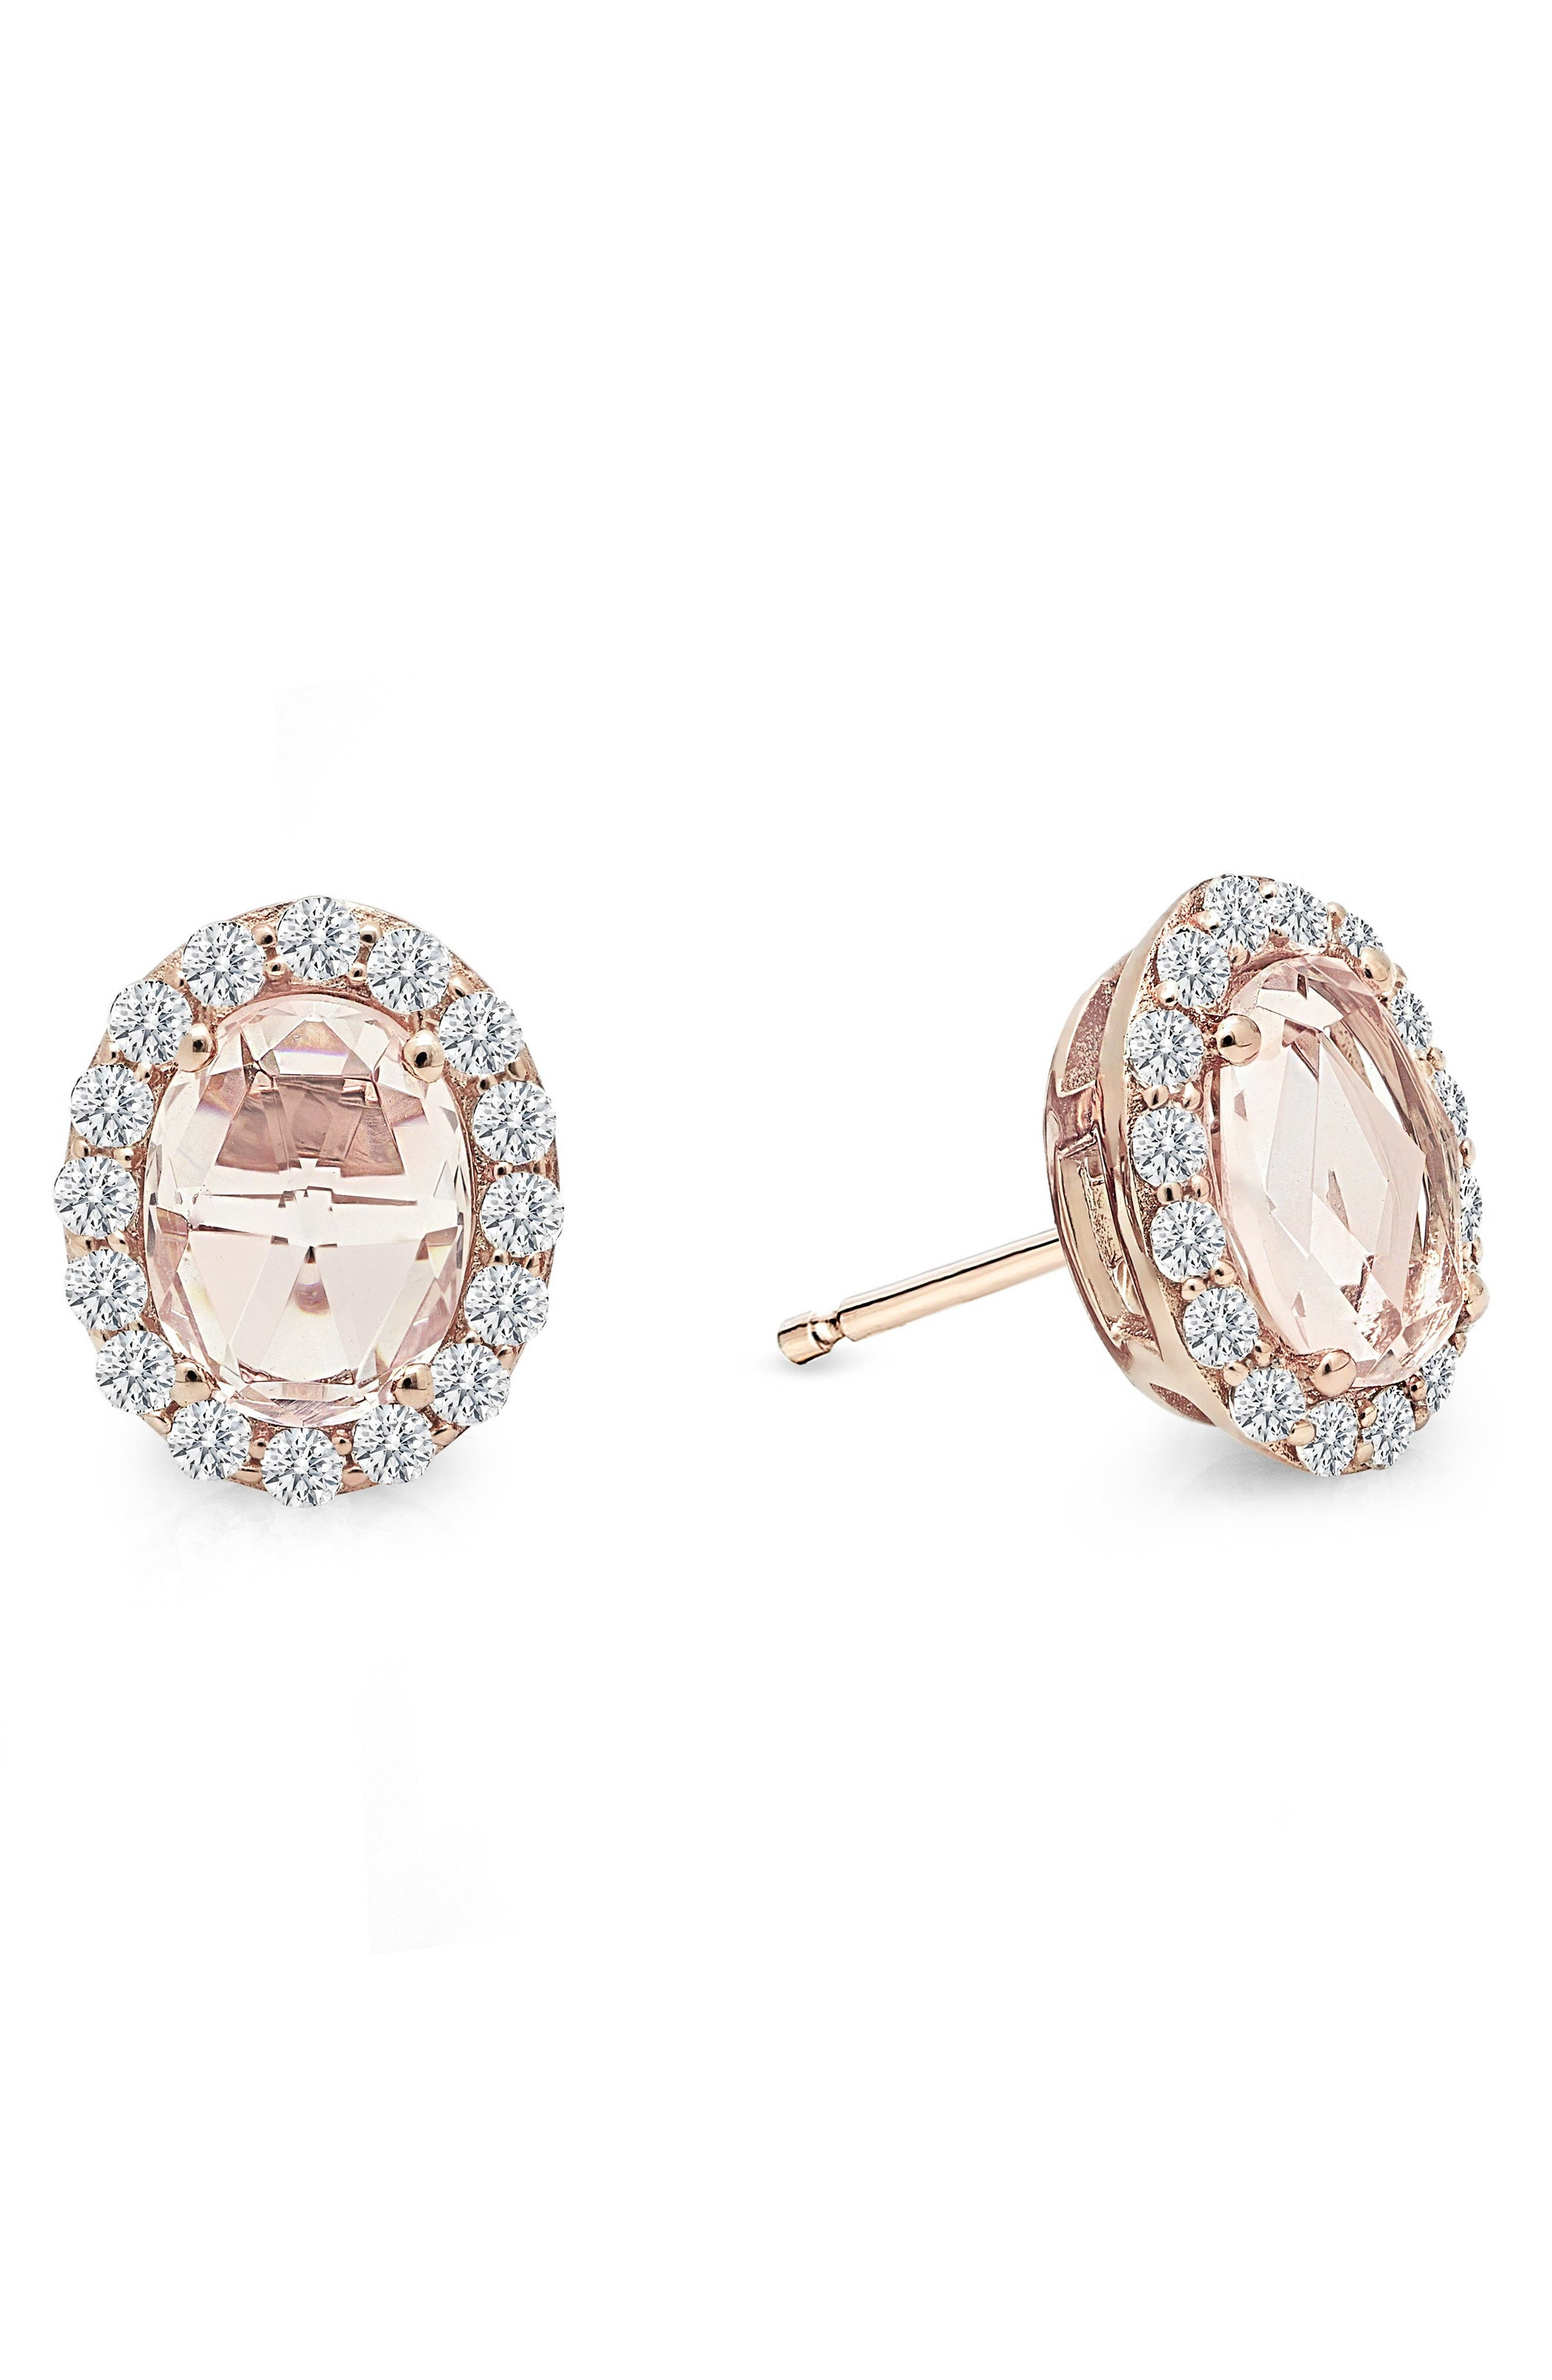 Simulated Diamond Halo Earrings,                             Main thumbnail 1, color,                             PINK / ROSE GOLD